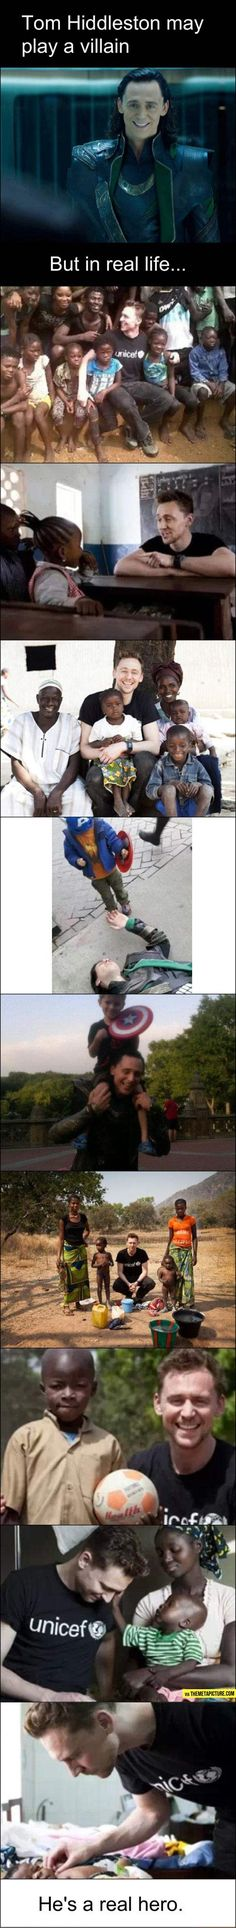 You're a good guy Tom Hiddleston. Yet another reason why he's my favorite actor.